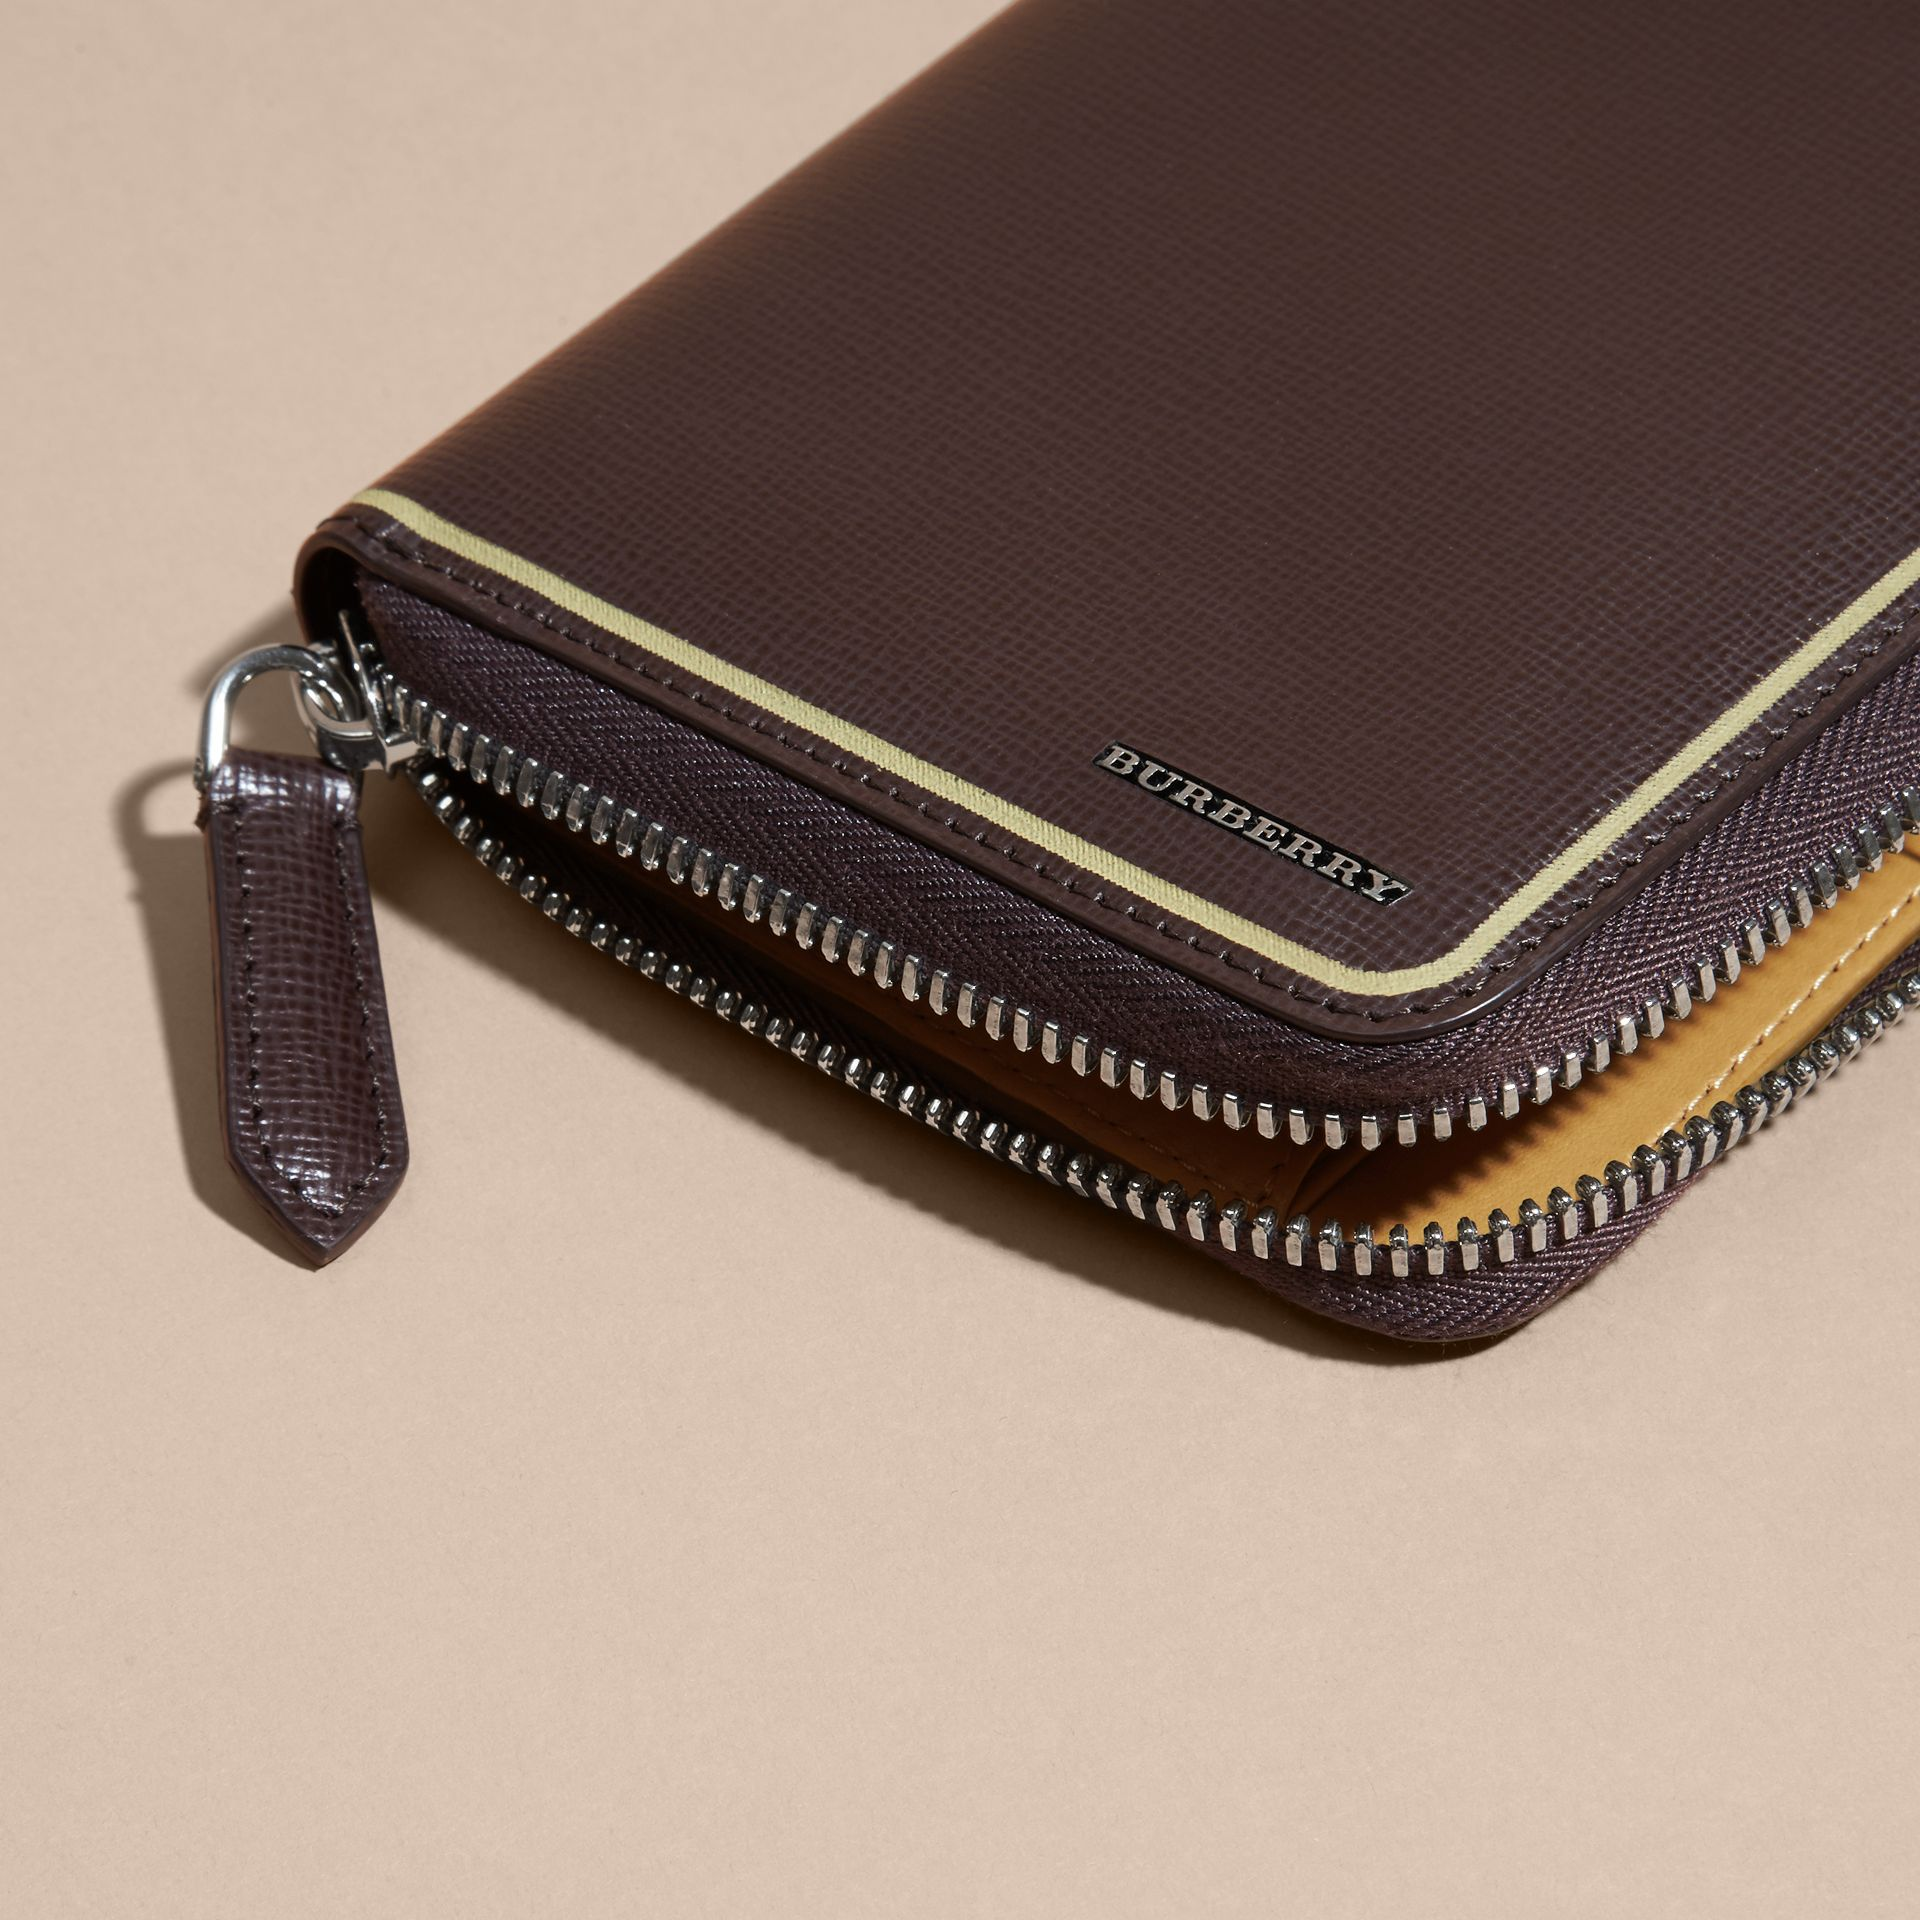 Border Detail London Leather Ziparound Wallet Peppercorn - gallery image 4